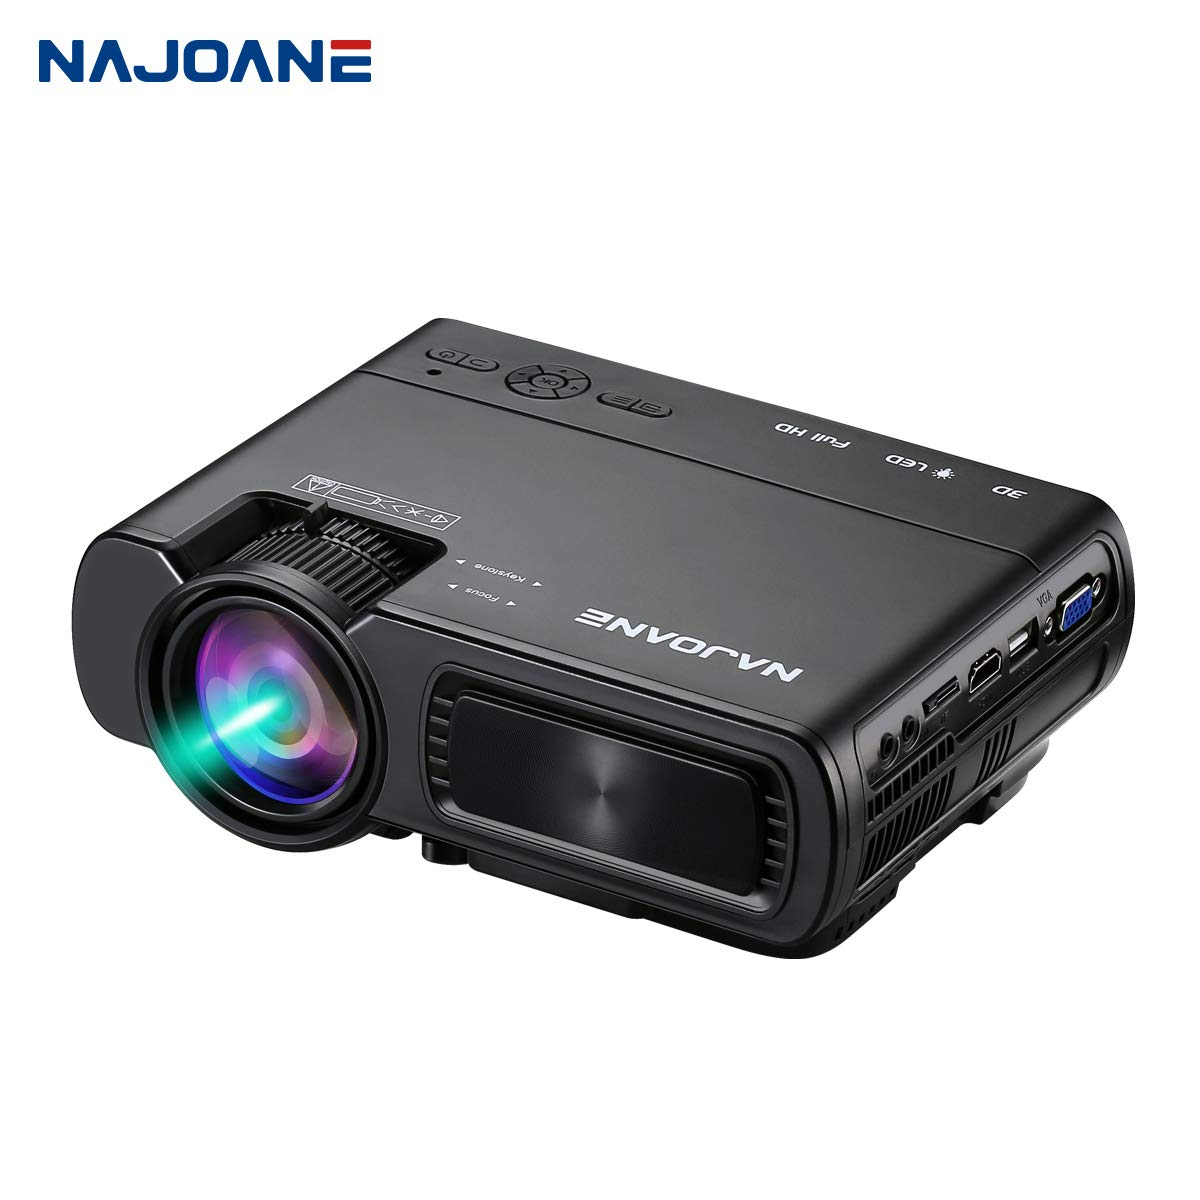 Najoane Mini Projector, Full HD LED Projector The Biggest is 1080P Supported Movie Projector, Portable Movie Projector with 55,000 Hrs LED Lamp Life, 2019 Upgrade for Home Theater Entertainment,Video